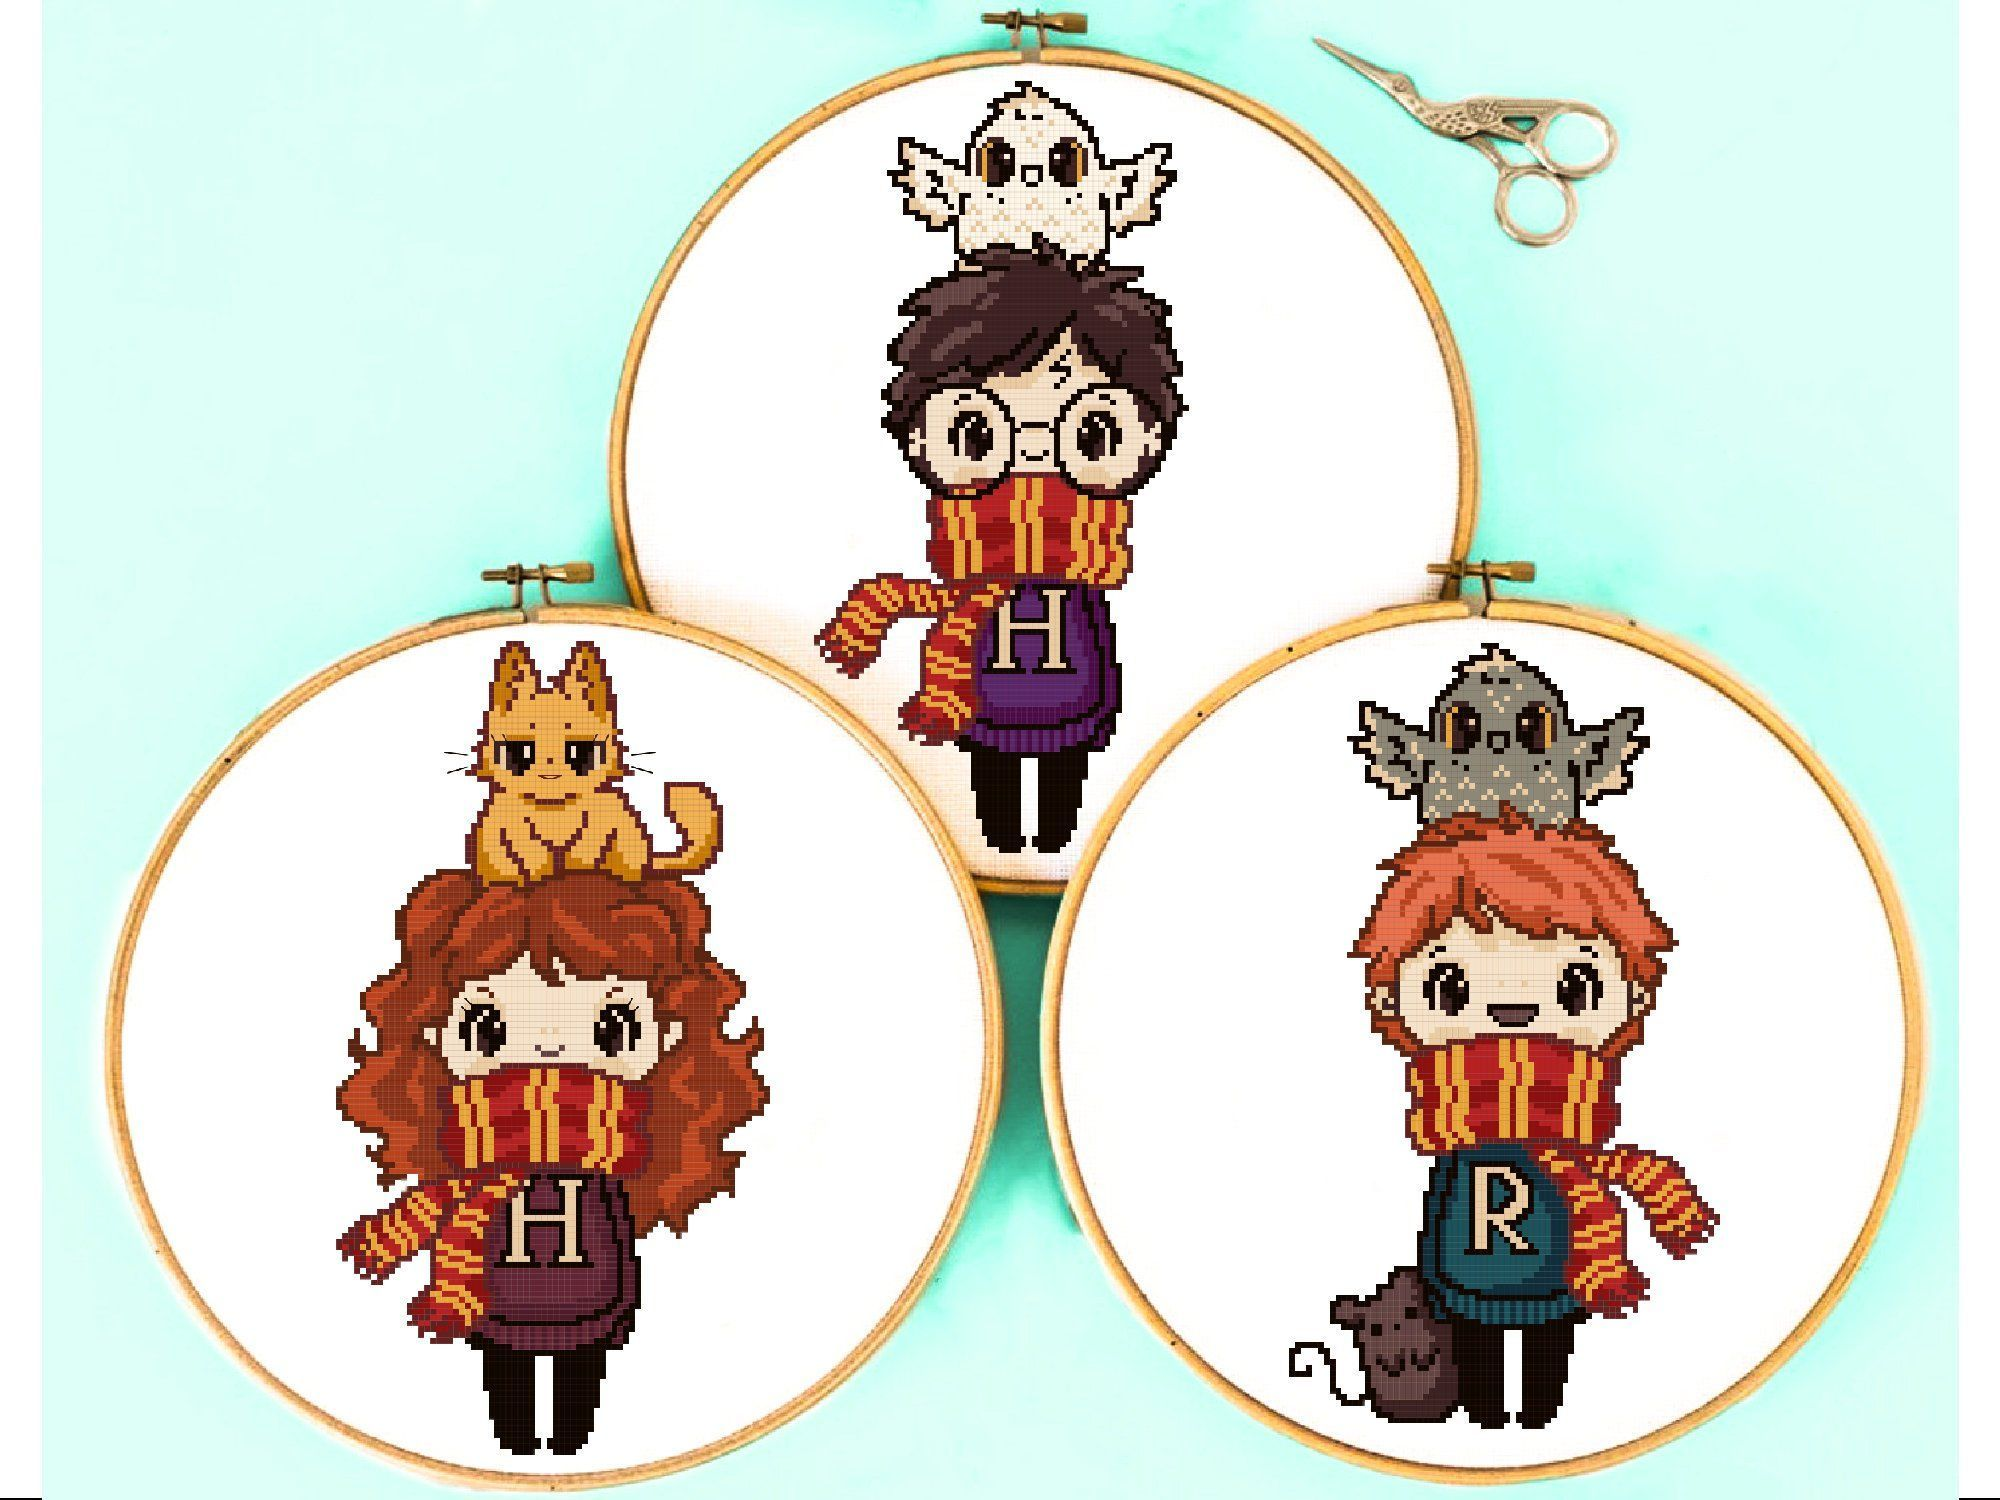 Harry Potter Cross Stitch Pattern Hermione Quote Modern Embroidery Chart Counted Xstitch Easy Funny PDF Sampler Birthday DIY Gift Animls